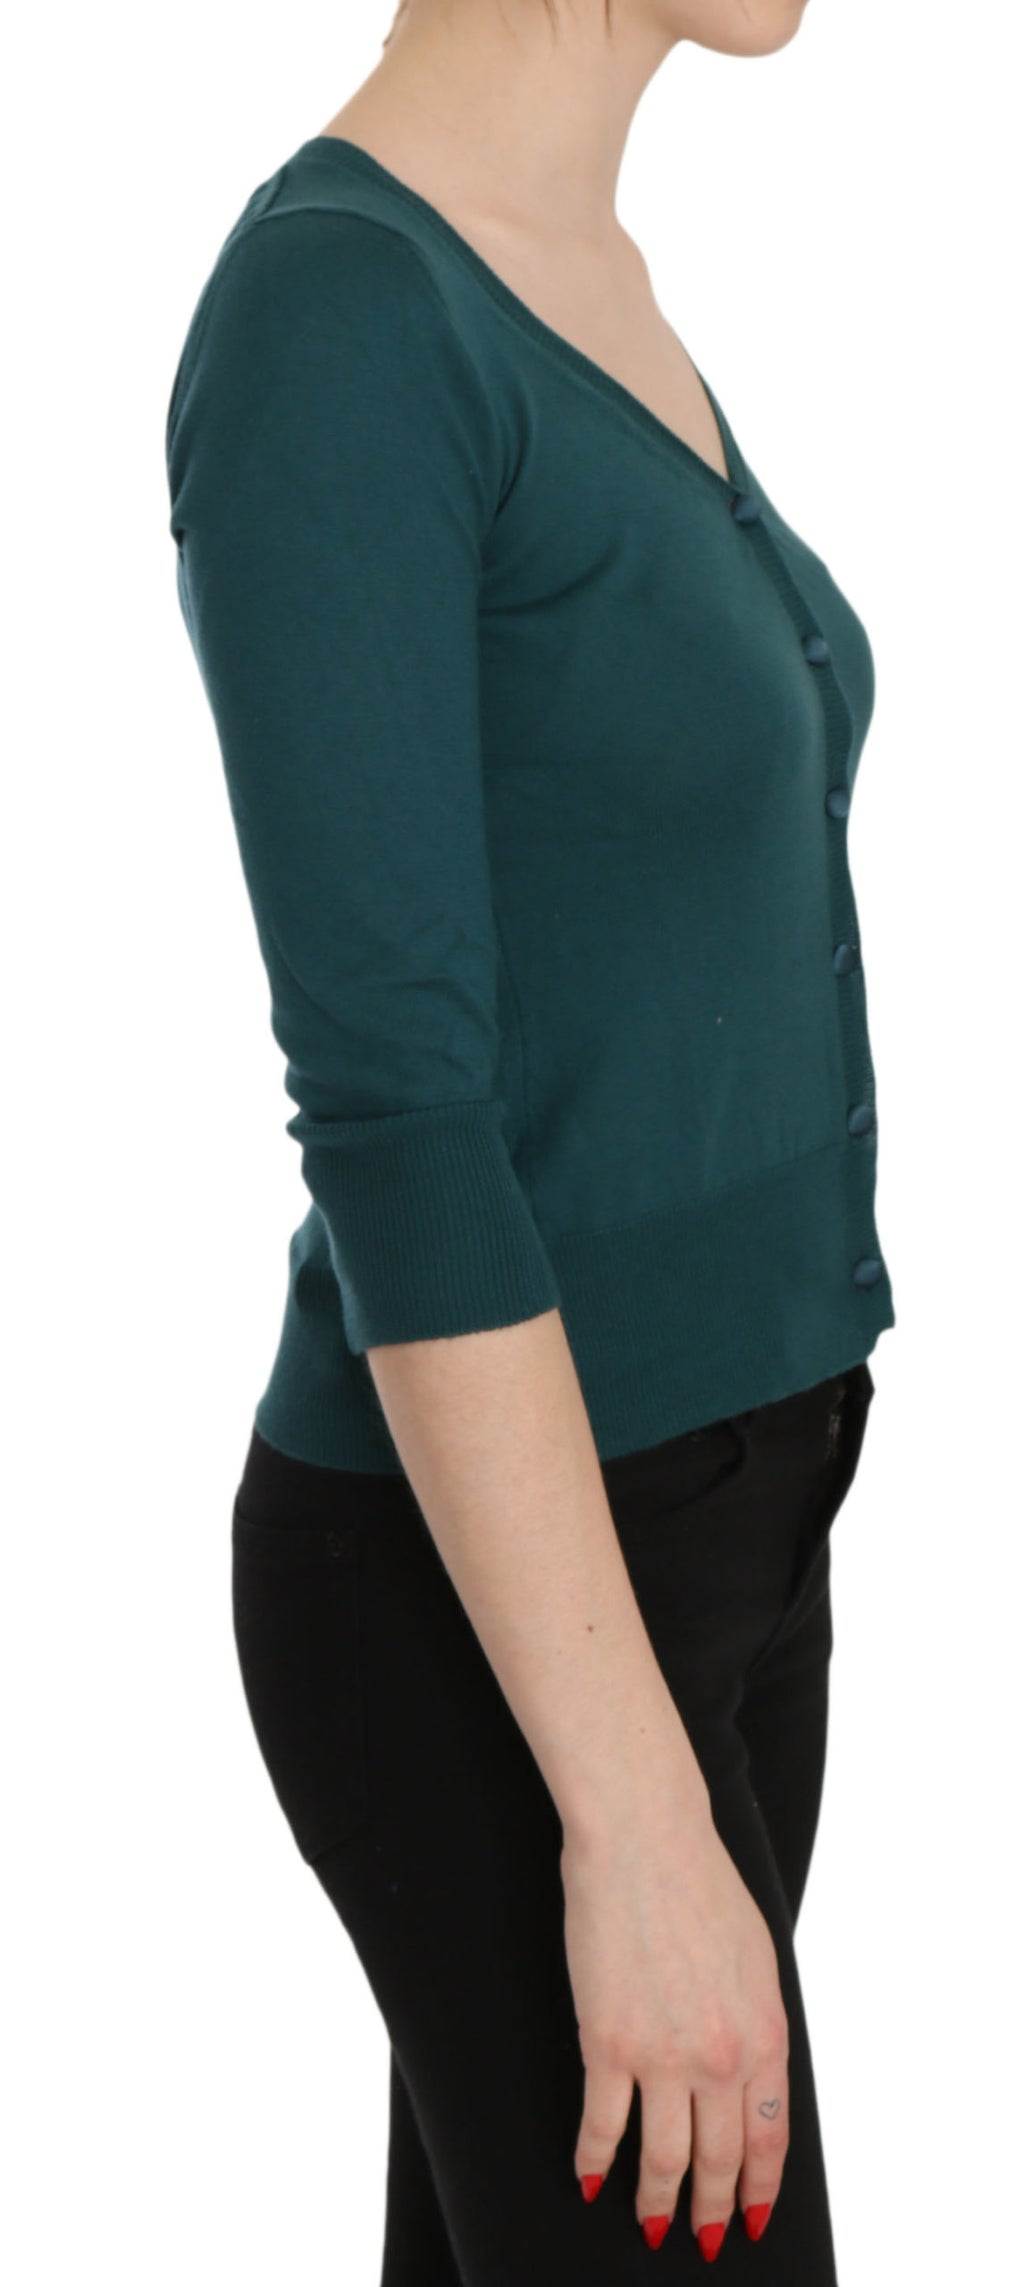 Blue Green Cotton 3/4 Sleeve Cardigan Top Blouse